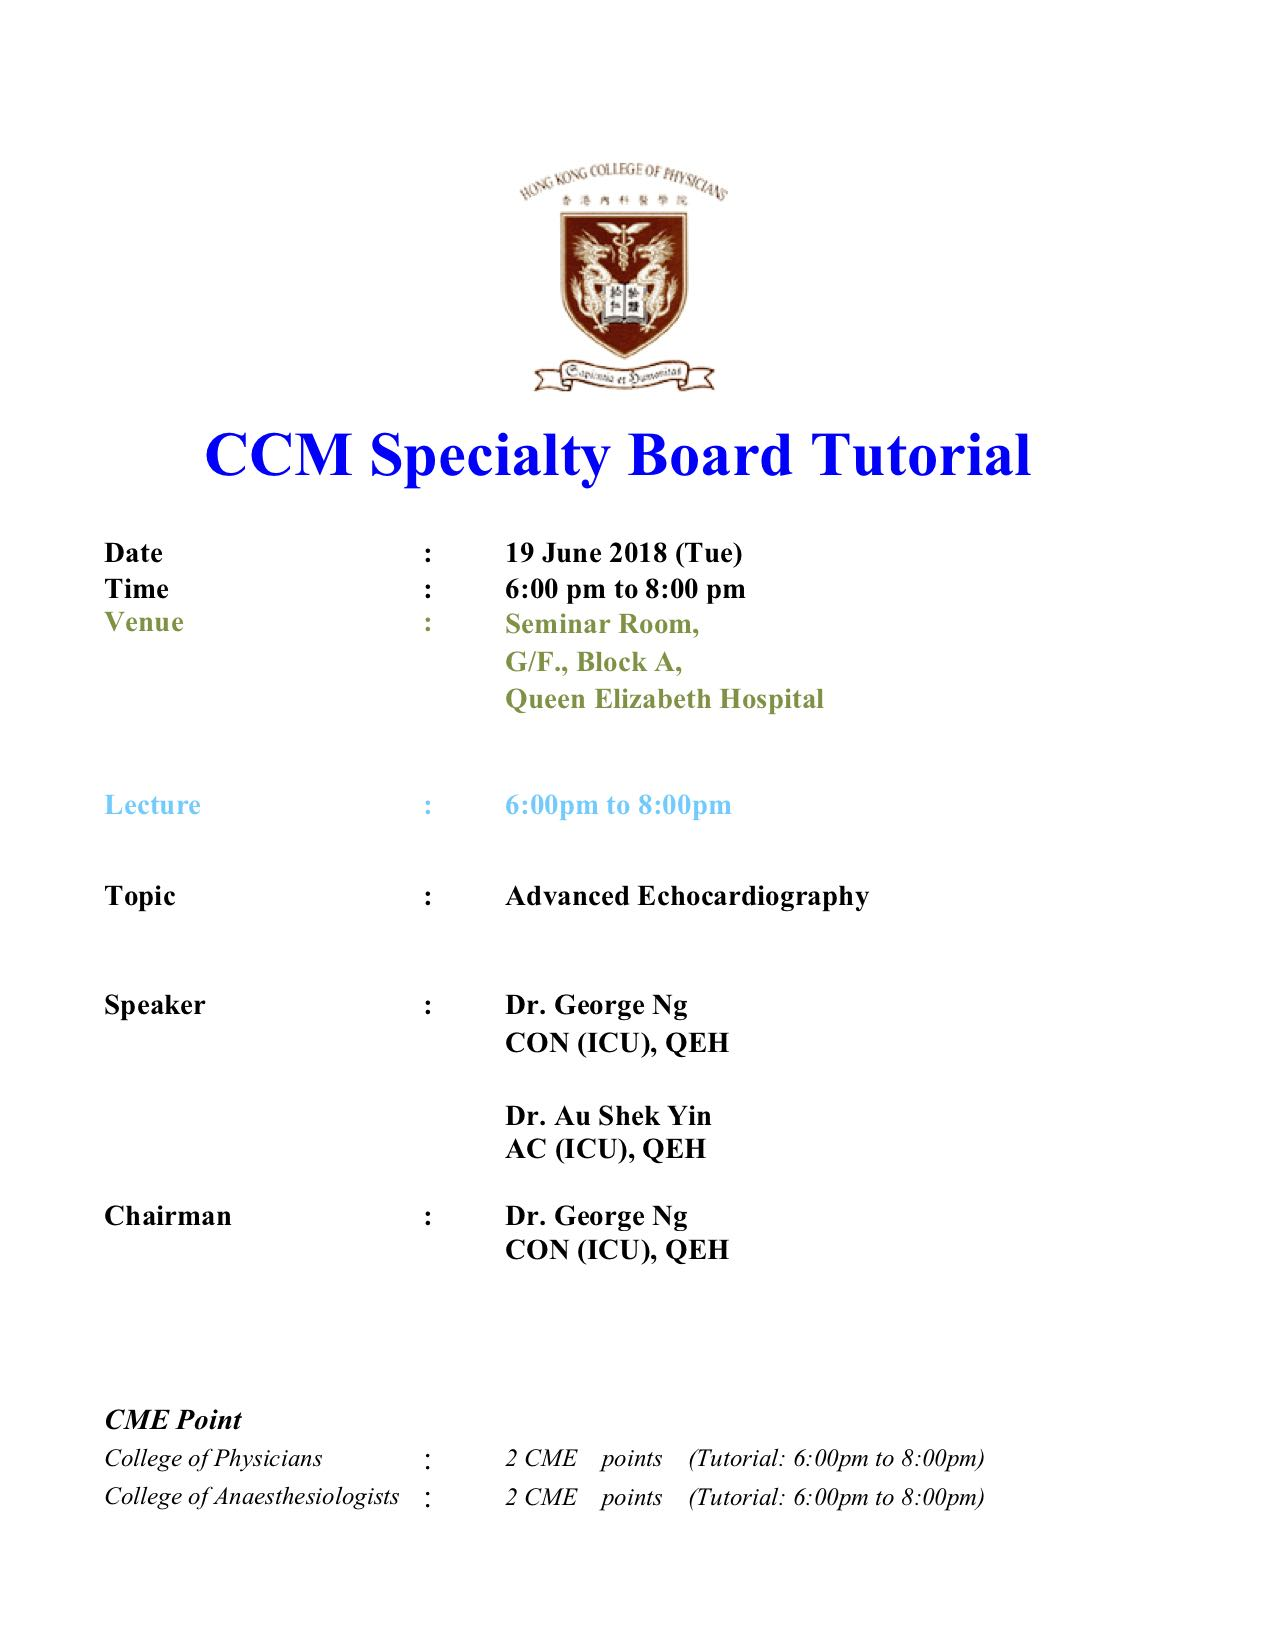 CCM Specialty Board Tutorial 20180619